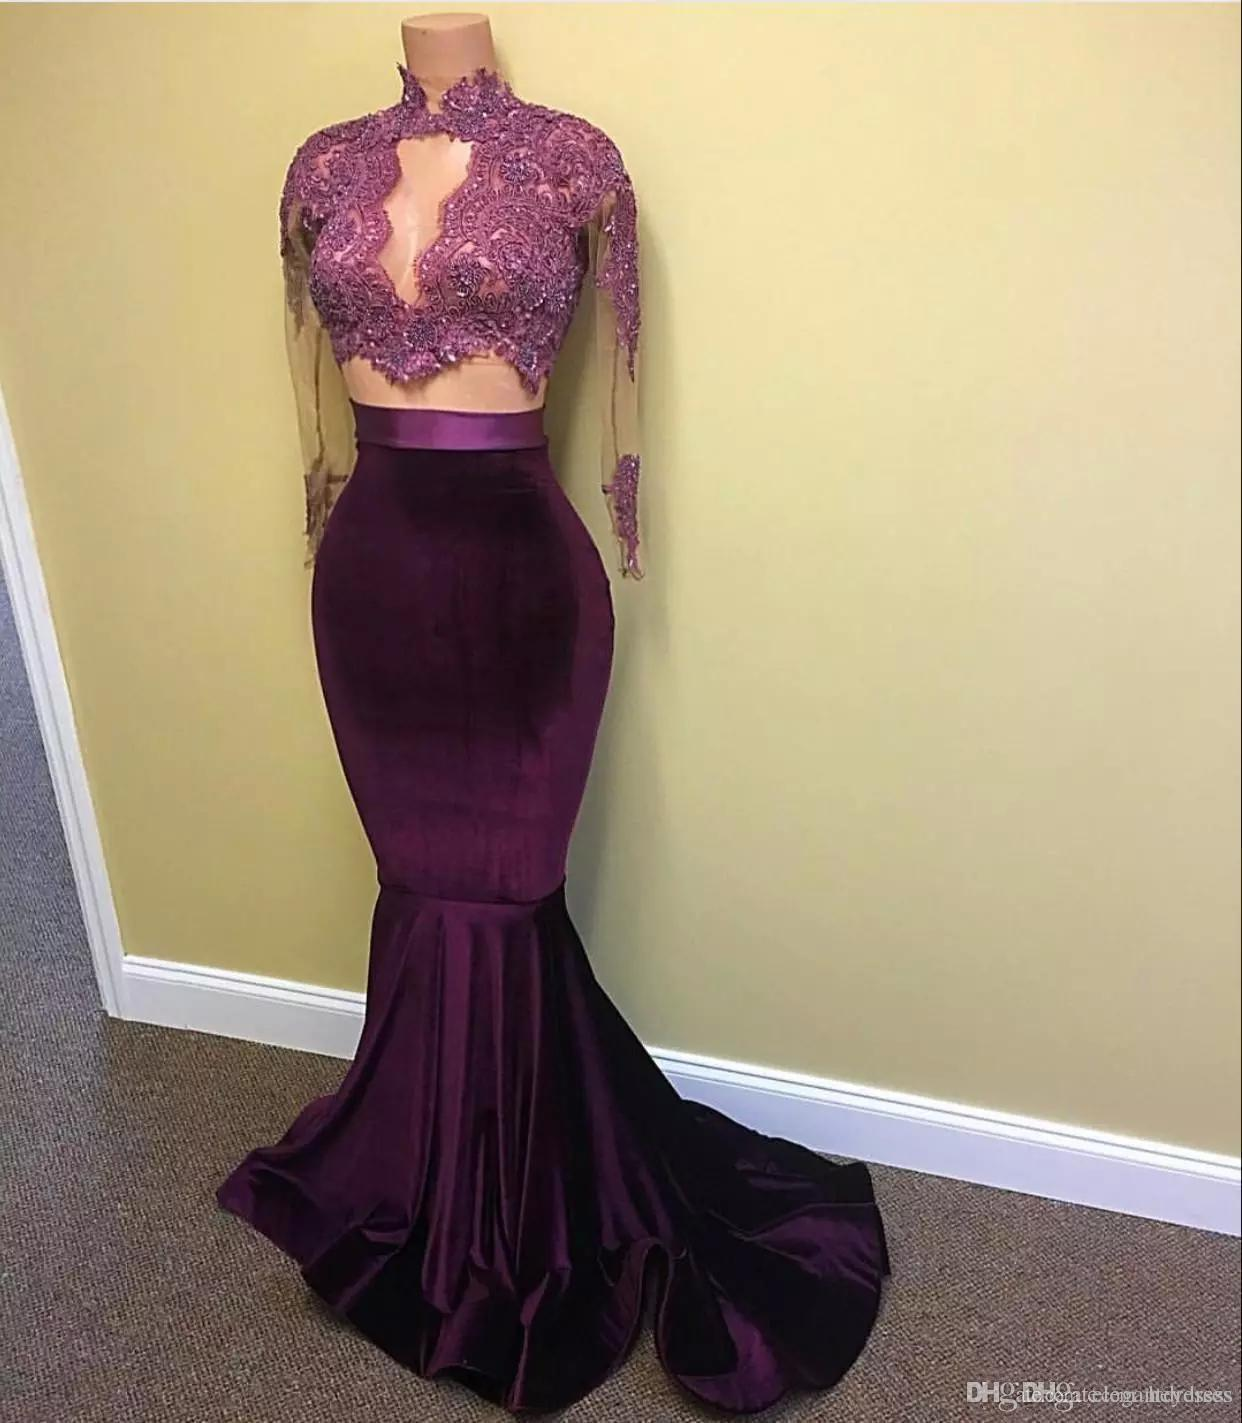 2017 New Velvet Two Pieces Prom Dresses Mermaid Style Lace Sheer Beaded Formal Dress Long Sleeve Women Arabic Celebrity Evening Gowns